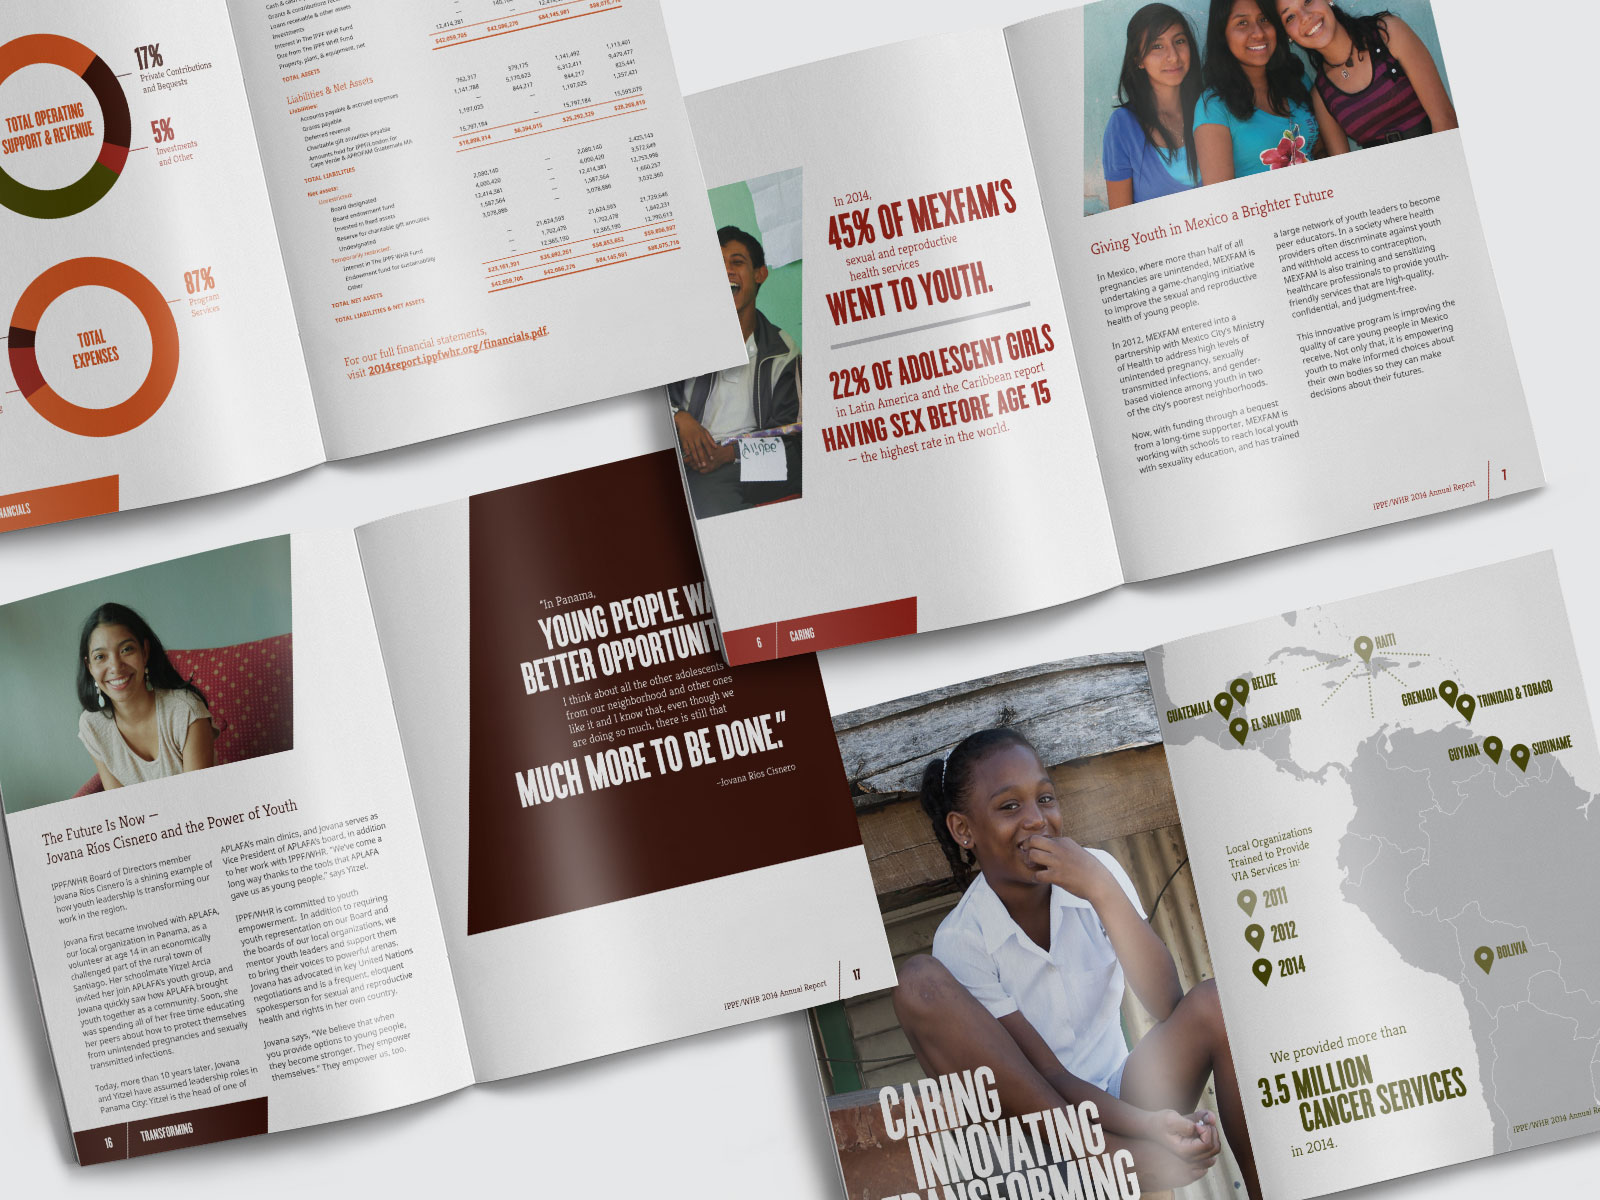 Image of work from the IPPF project.